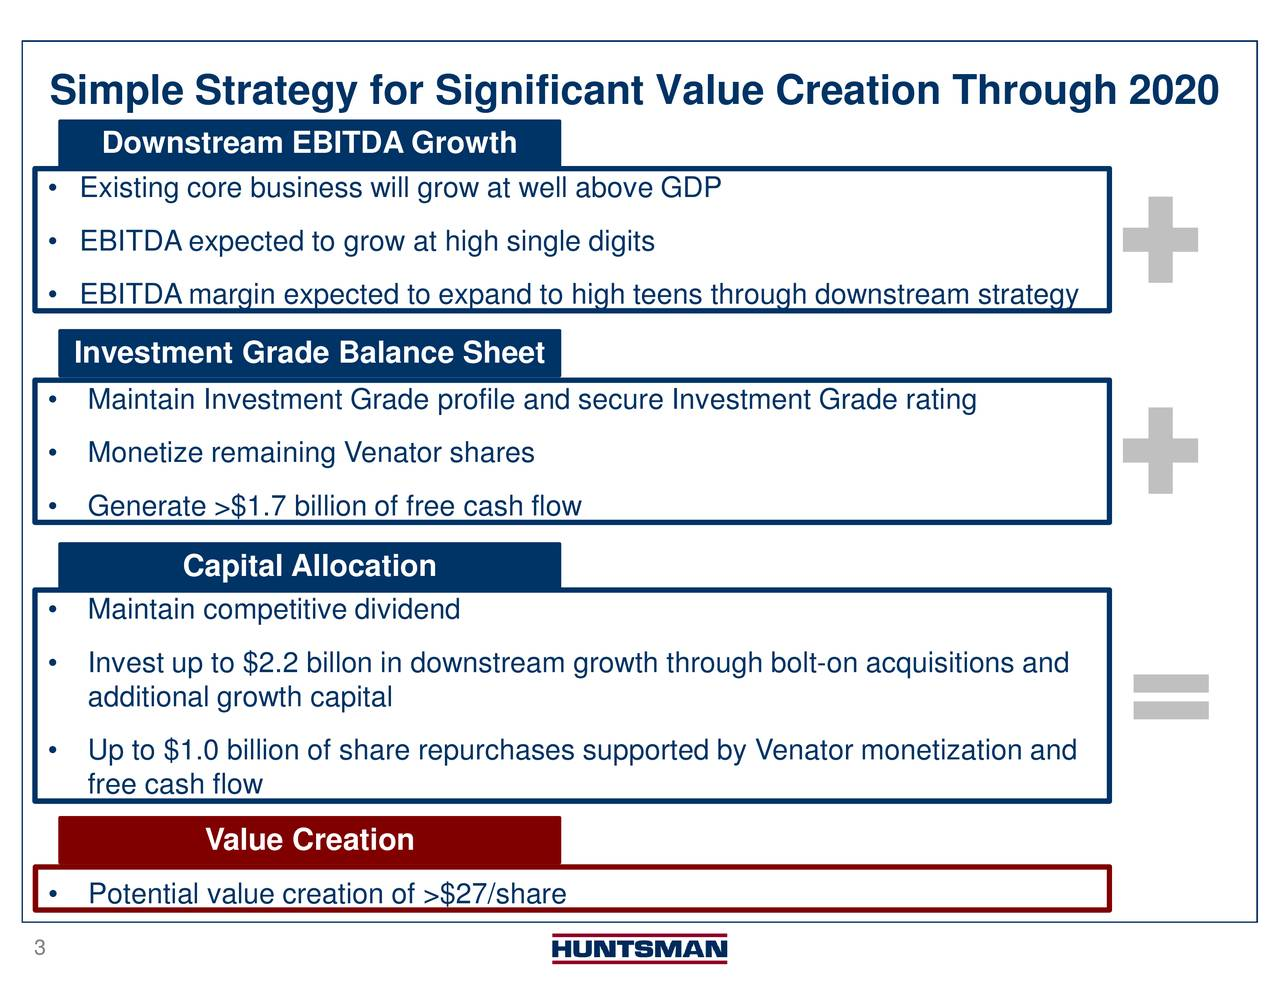 ough dowtment Grade rating ugh bolt-on acquisitions andon and Capital Allocation Value Creation Downstream EBITDA Growth Investment Grade Balance Sheettional growth capital Simple • Ex•iti•IcoBeeb•pmc•rsM•onetieereea>$in7V•inUp to $1.0 billion of share repurchases supported 3